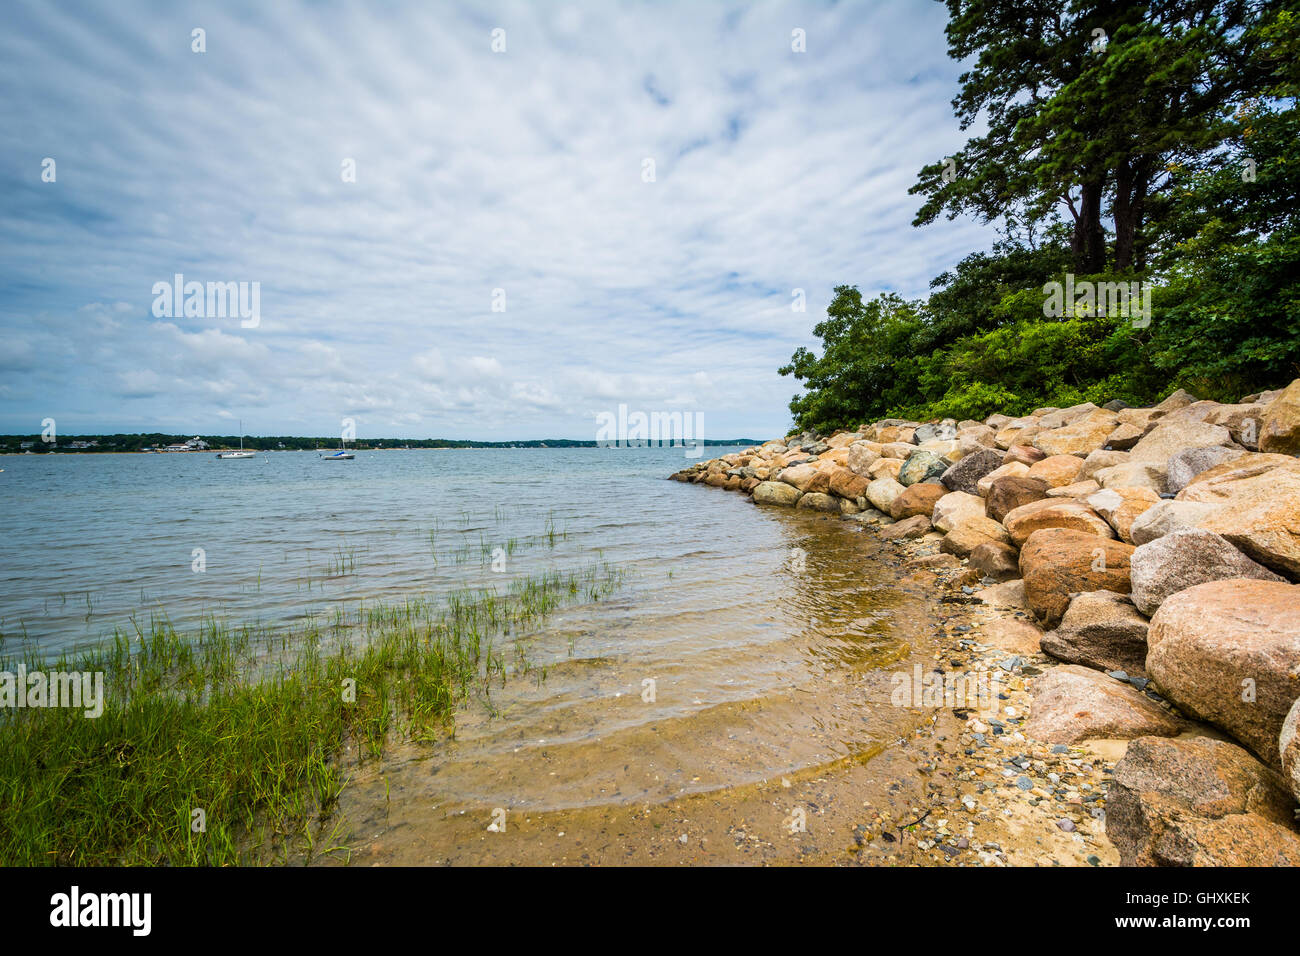 Costa rocosa en Chatham, en Cape Cod, Massachusetts. Imagen De Stock